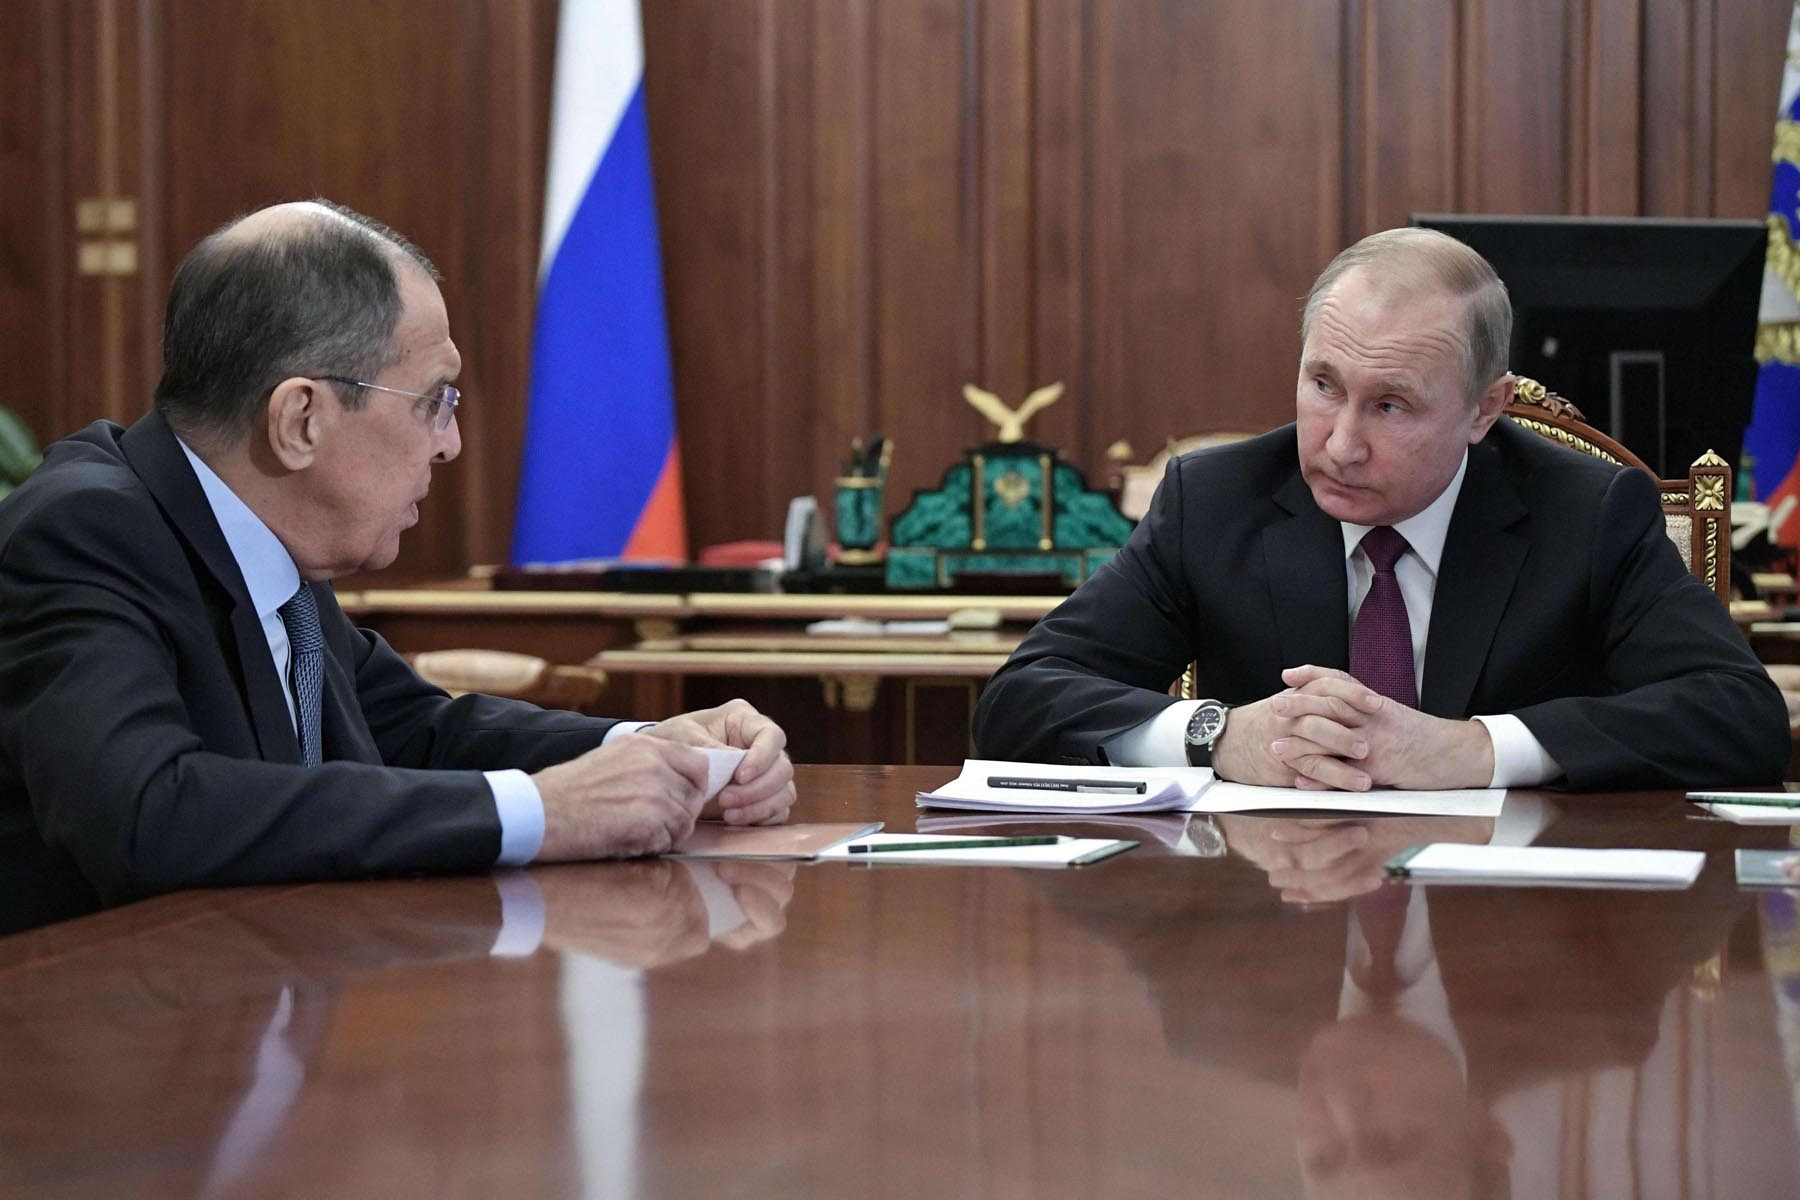 Russia's President Vladimir Putin (R) attends a meeting with Foreign Minister Sergei Lavrov in Moscow, last February. (AFP)